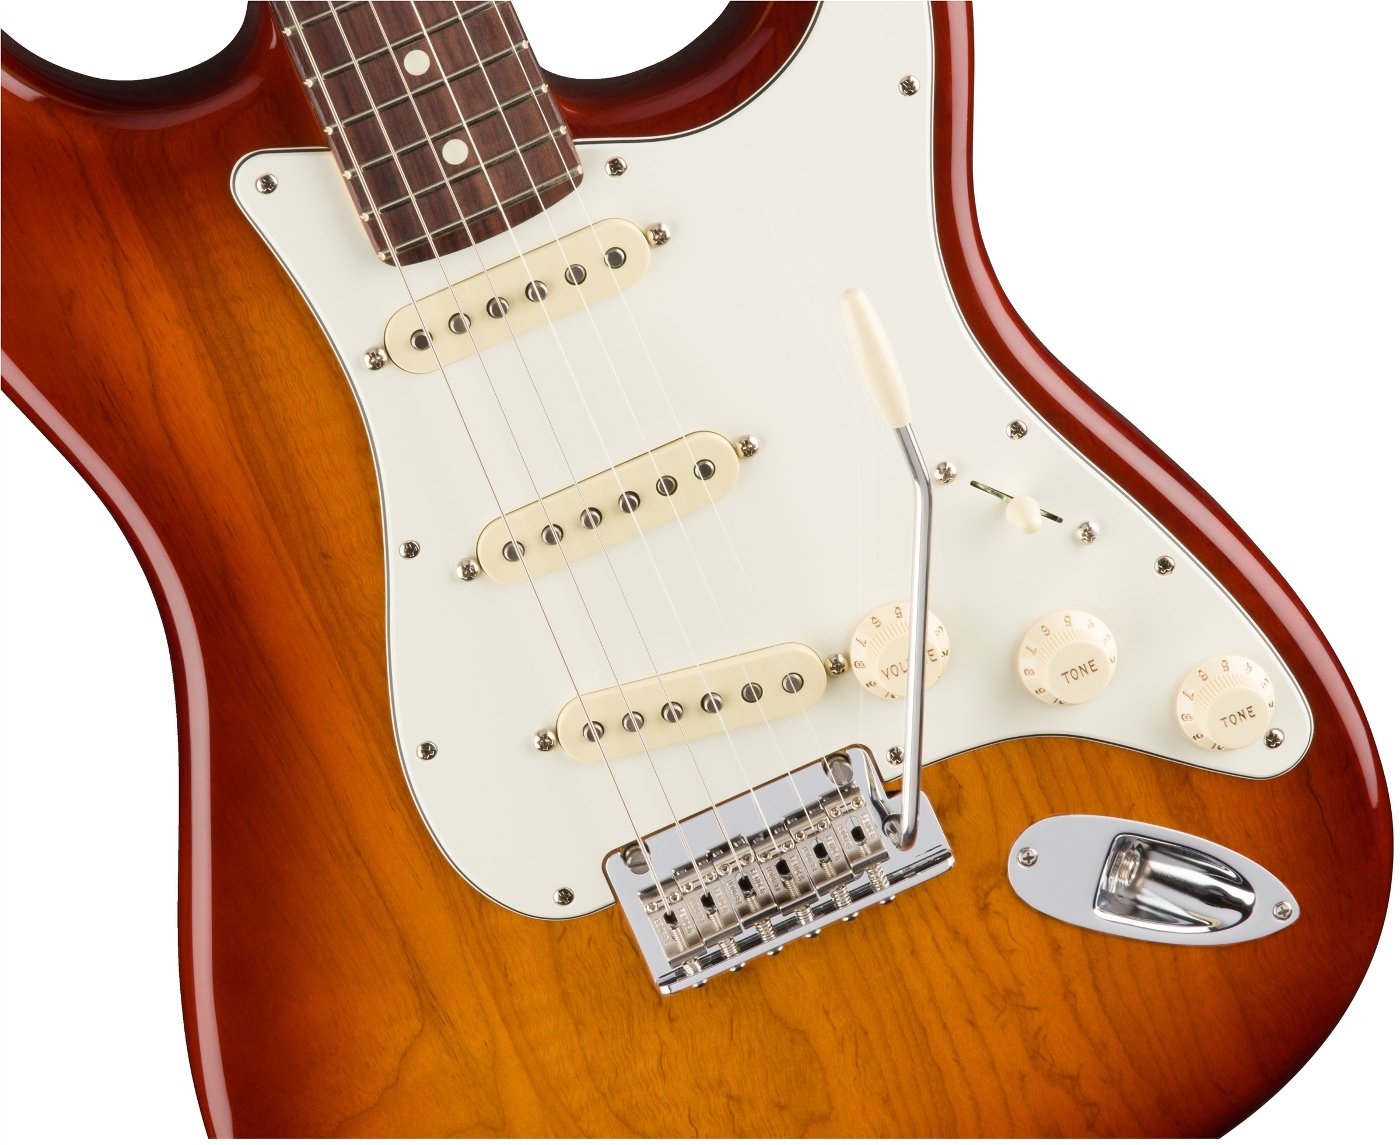 Electric Guitar Rosewood Fingerboard, Sienna Burst Finish